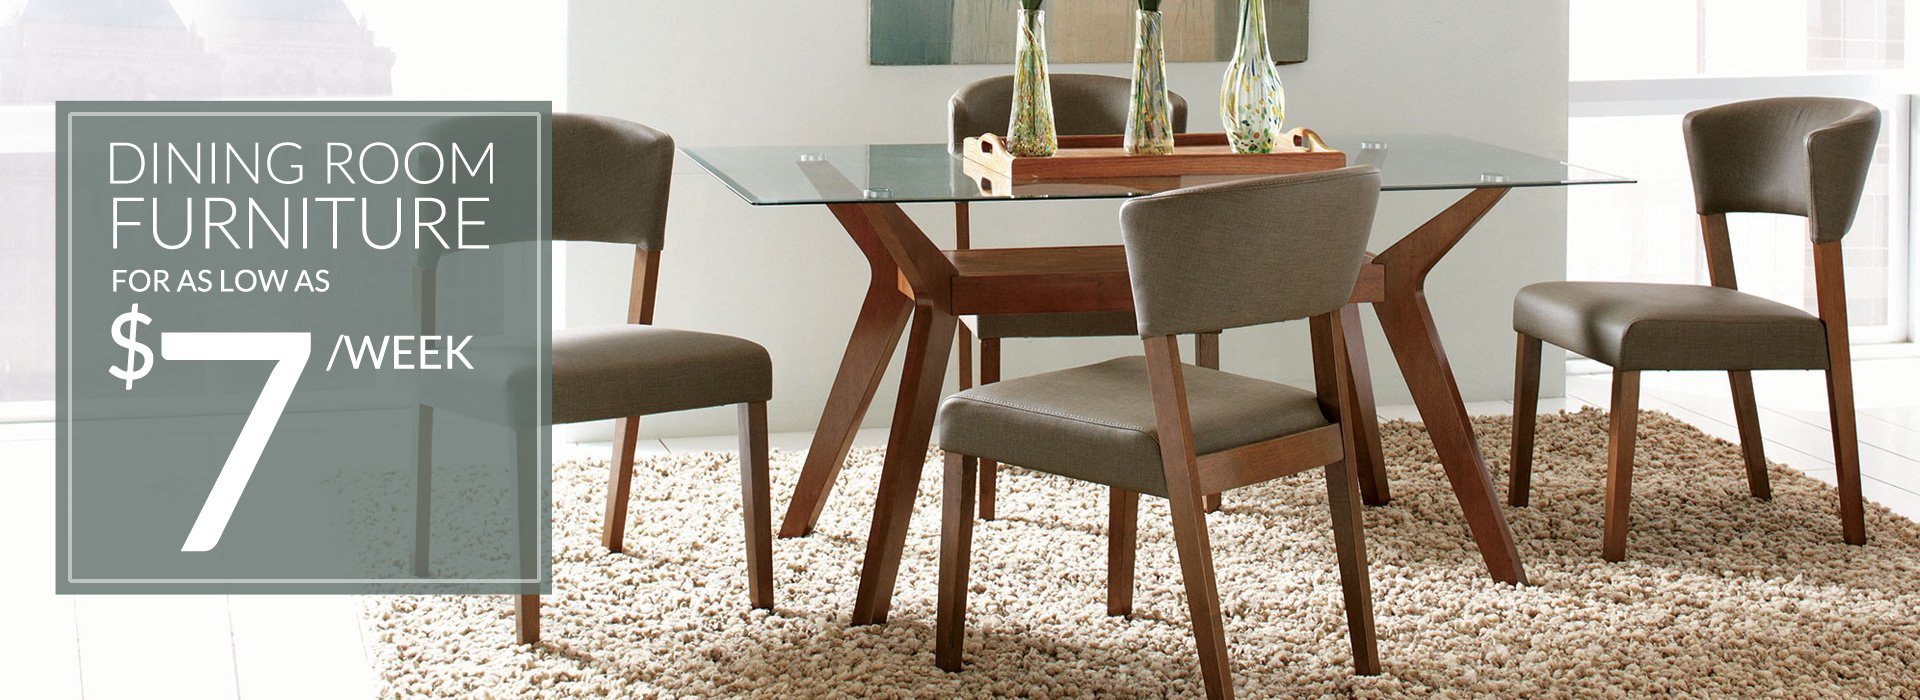 Home furniture financing with bad credit 28 images for Furniture 7 credit reviews